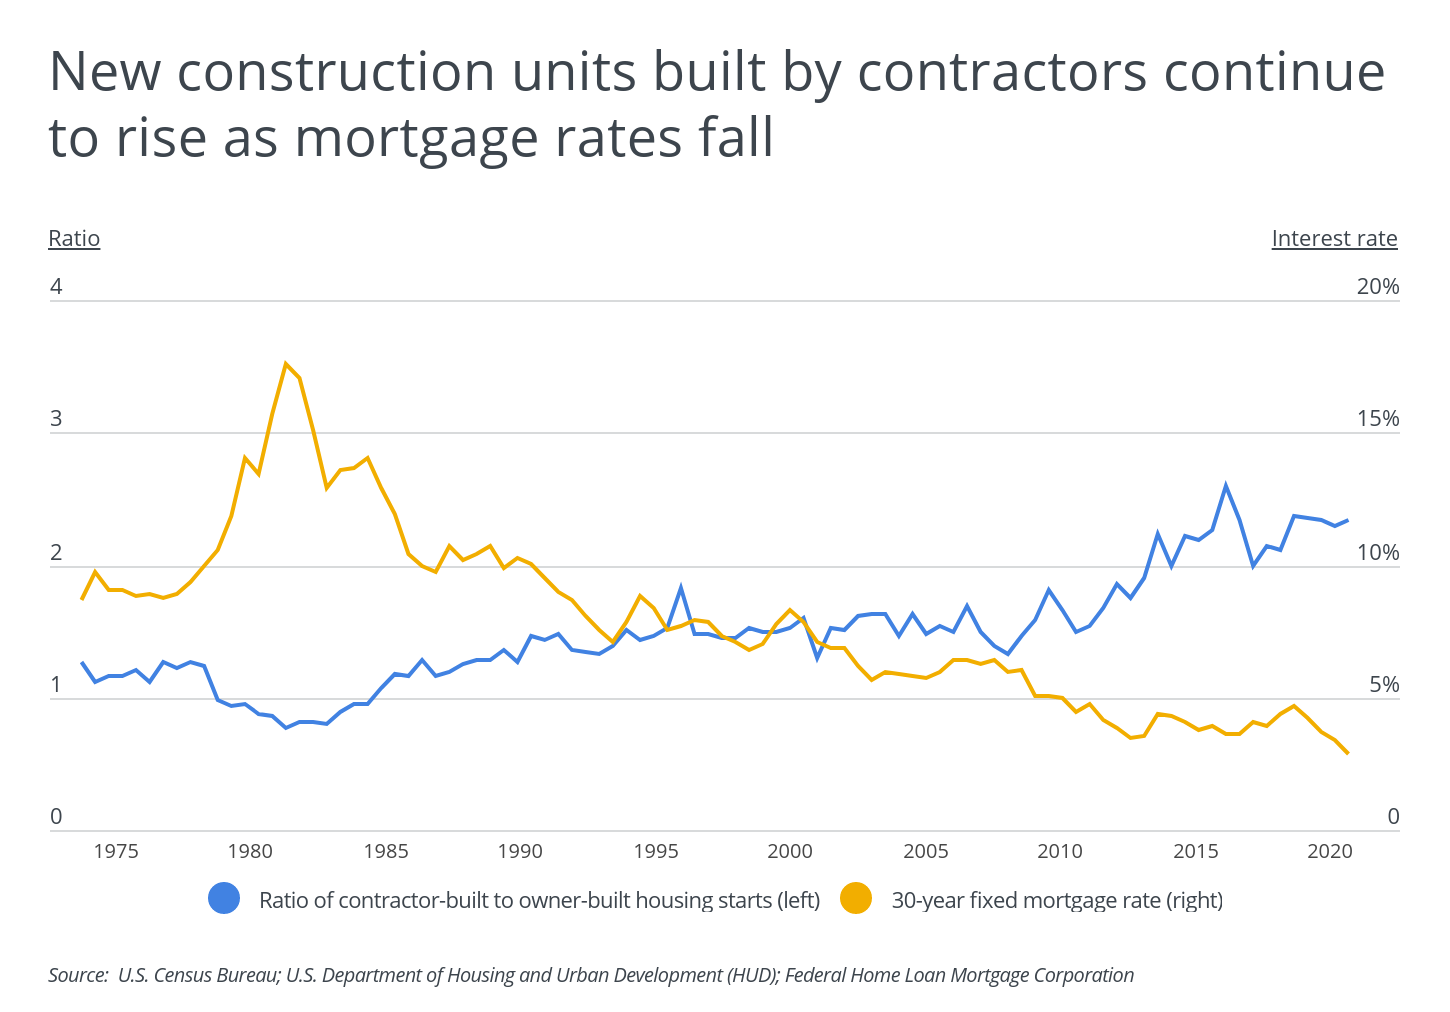 New construction units built by contractors continue to rise as mortgage rates fall